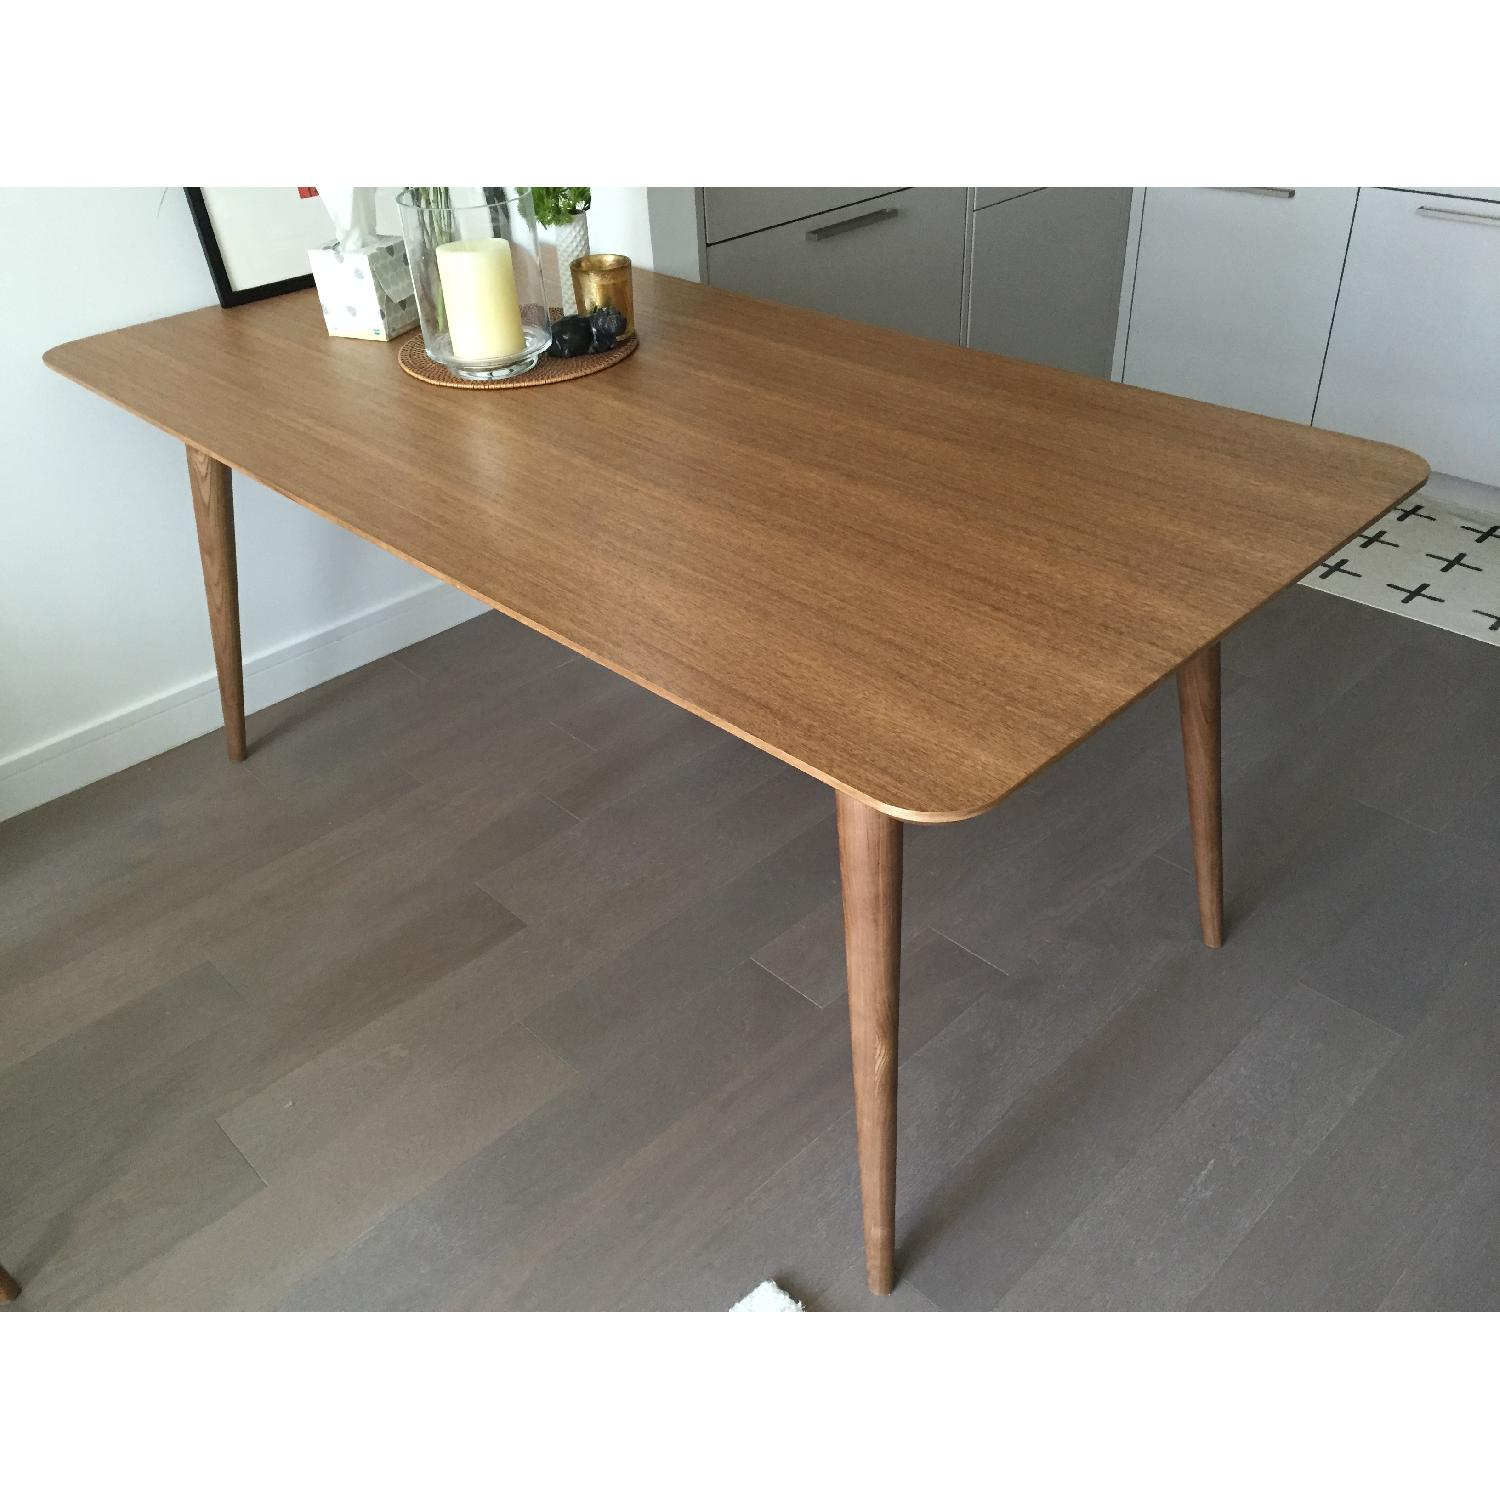 Rove Concepts Sven Dining Table - image-4